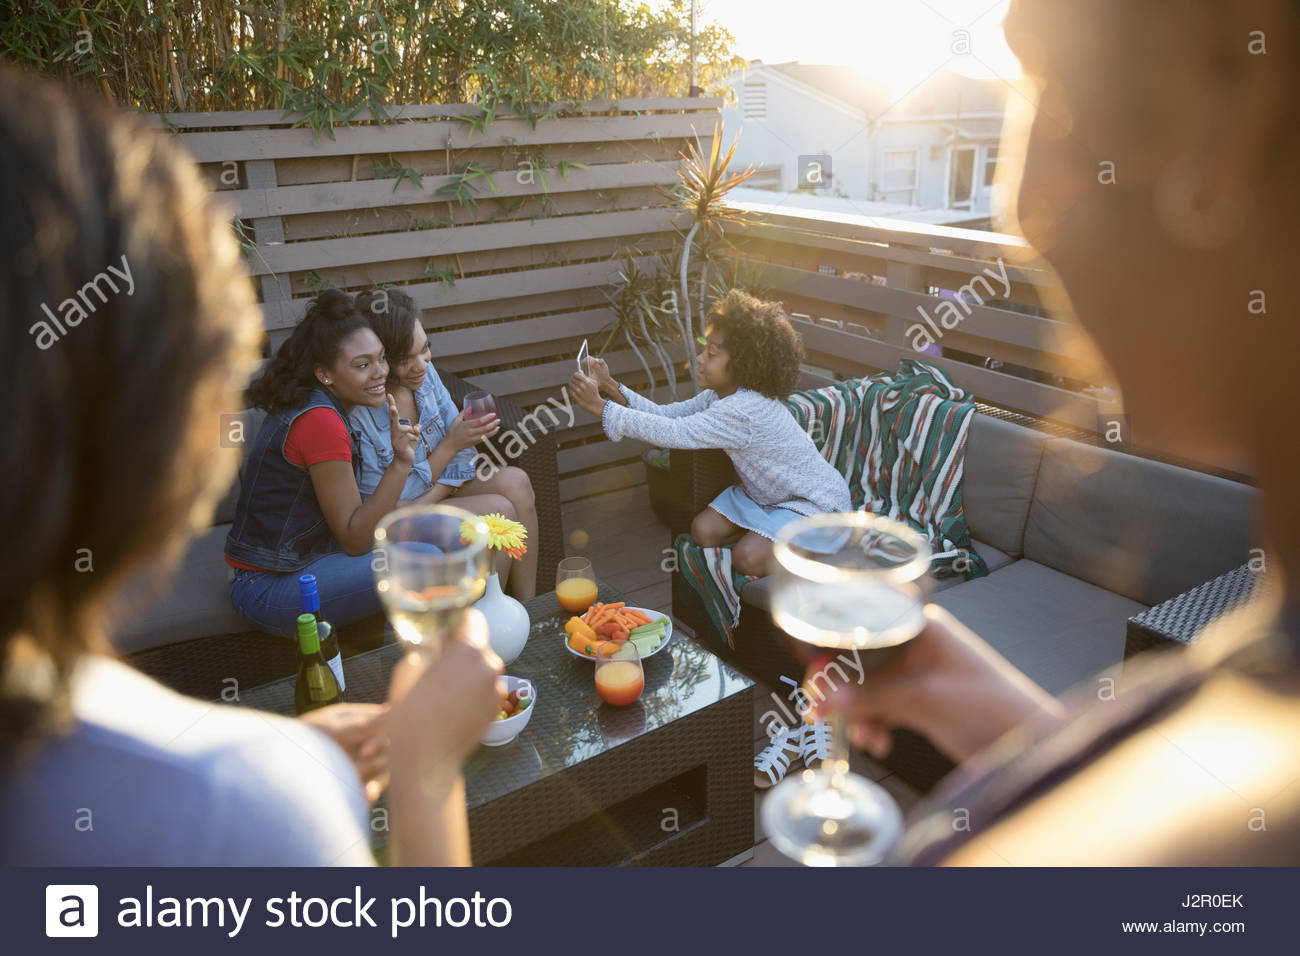 Family hanging out, drinking wine and using digital tablet on sunny deck - Stock Image